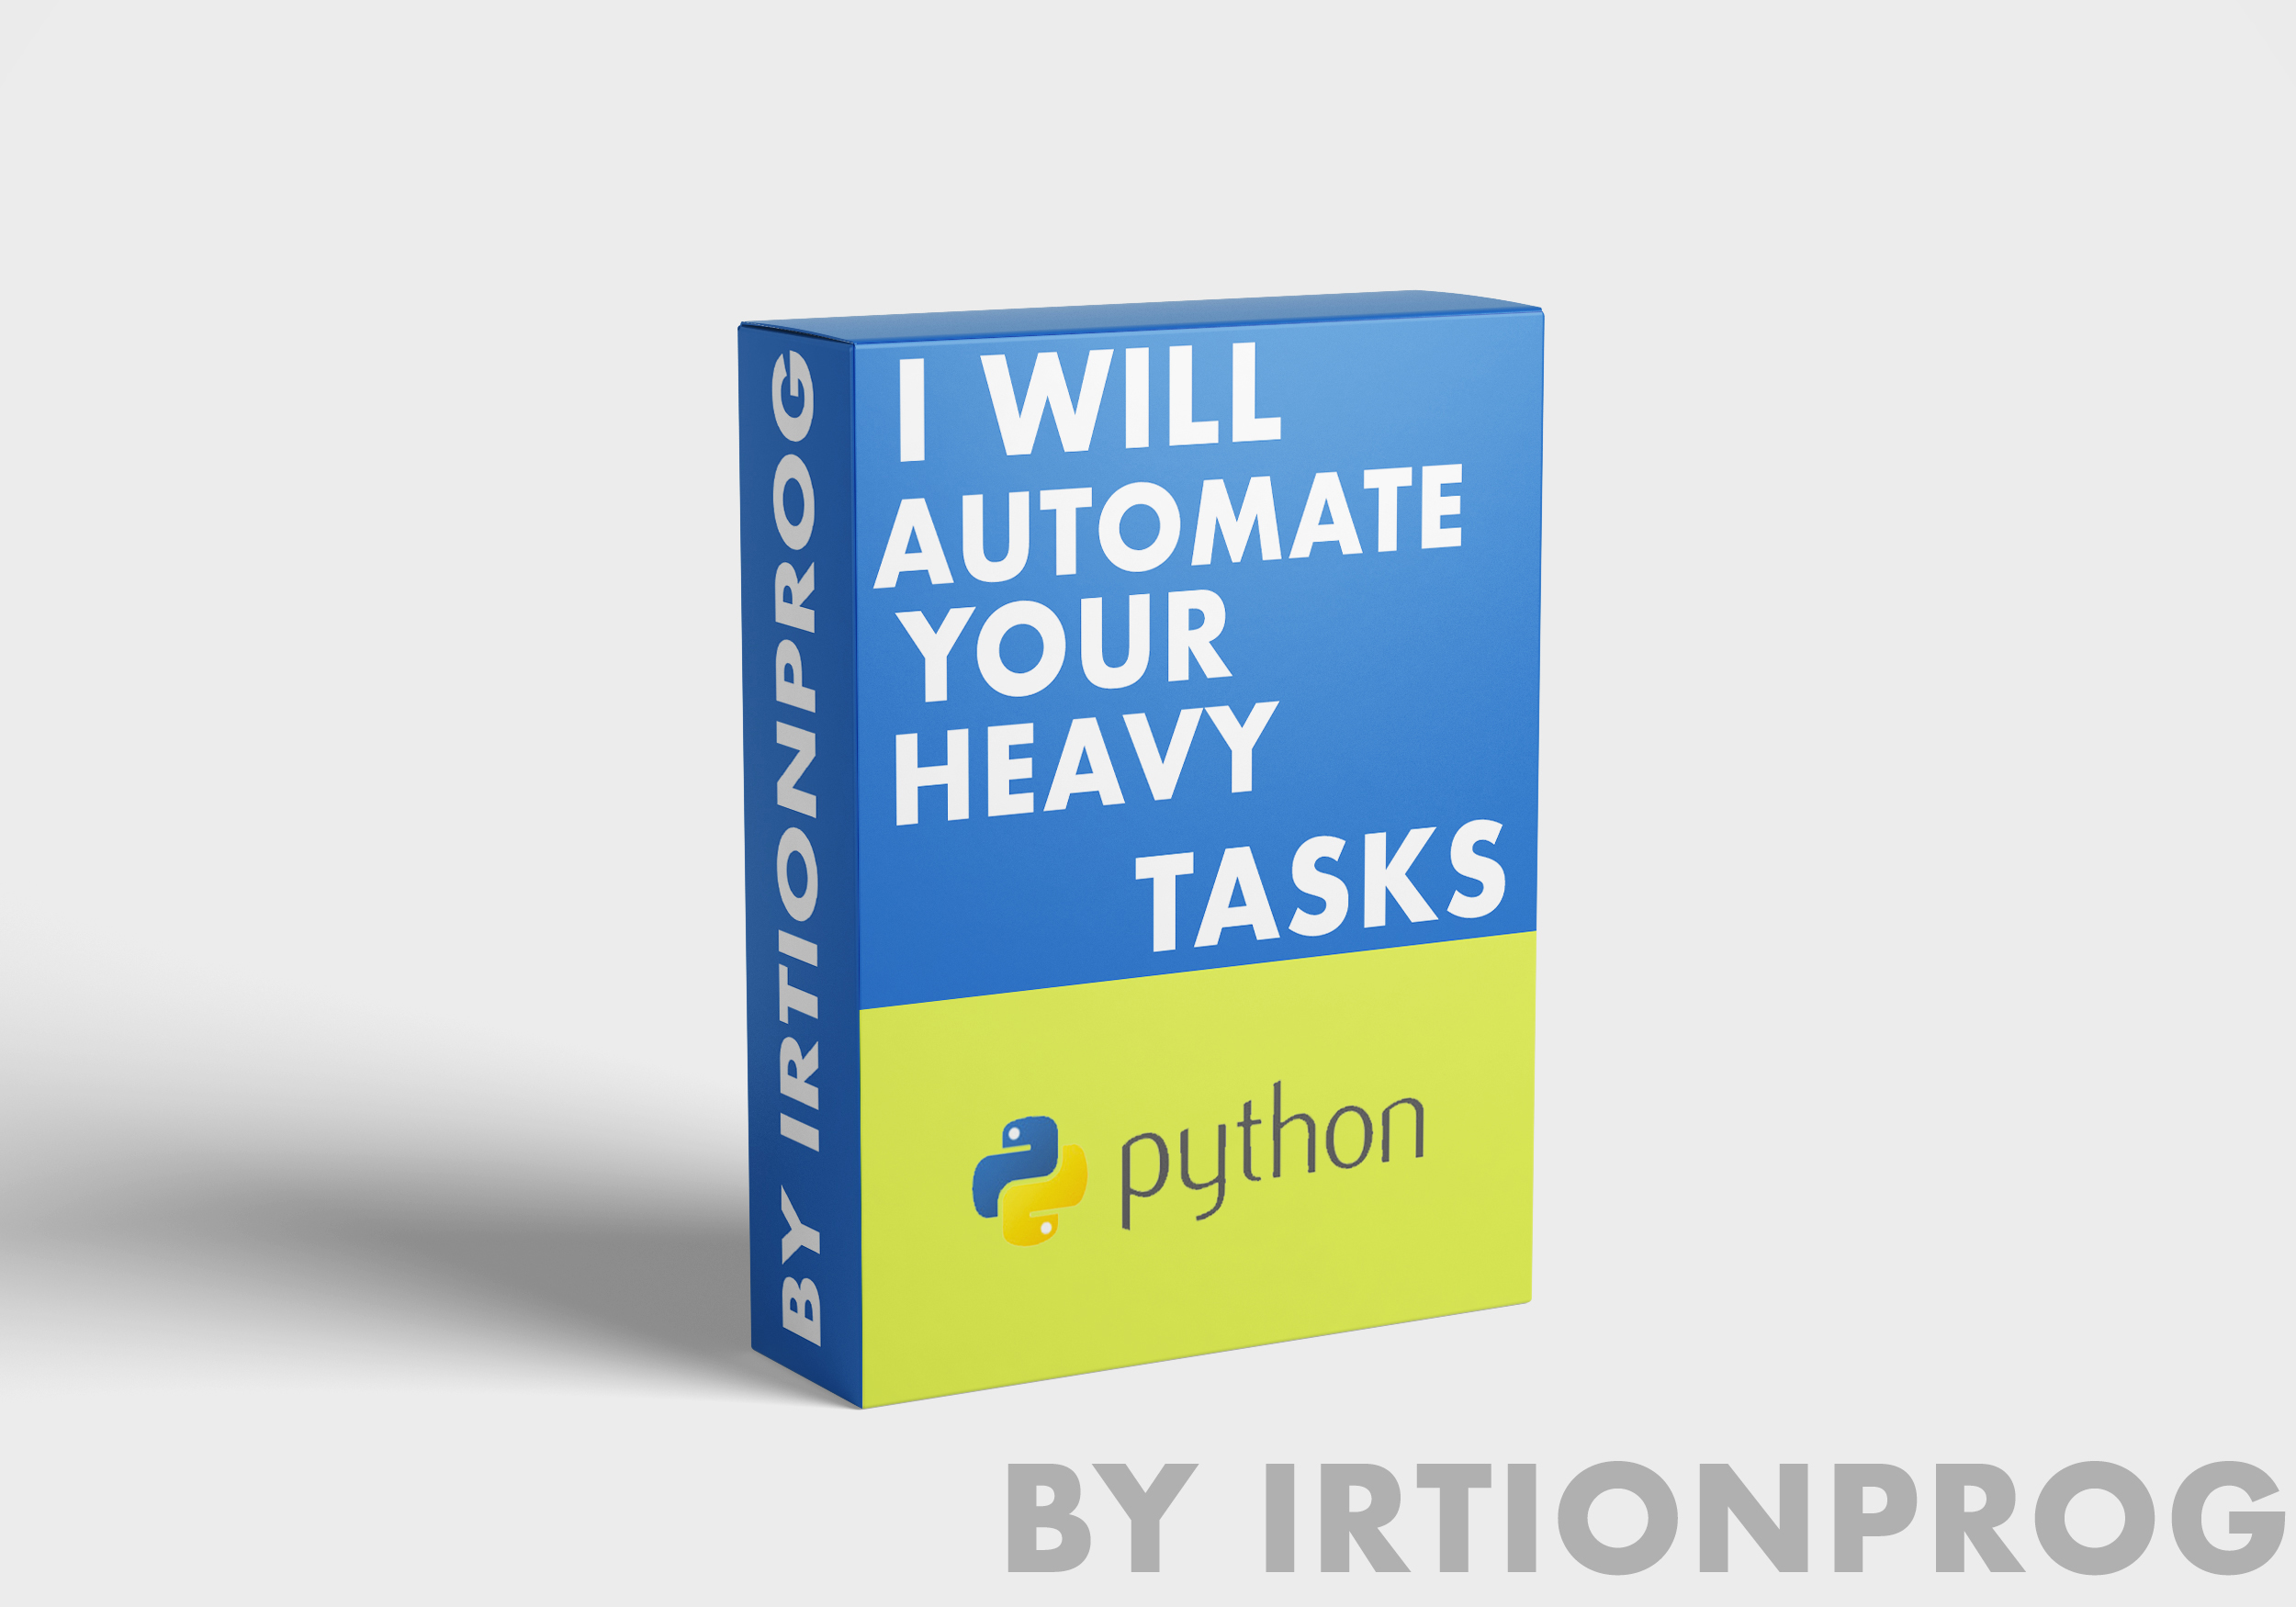 develop bot for automate your heavy and bulk tasks